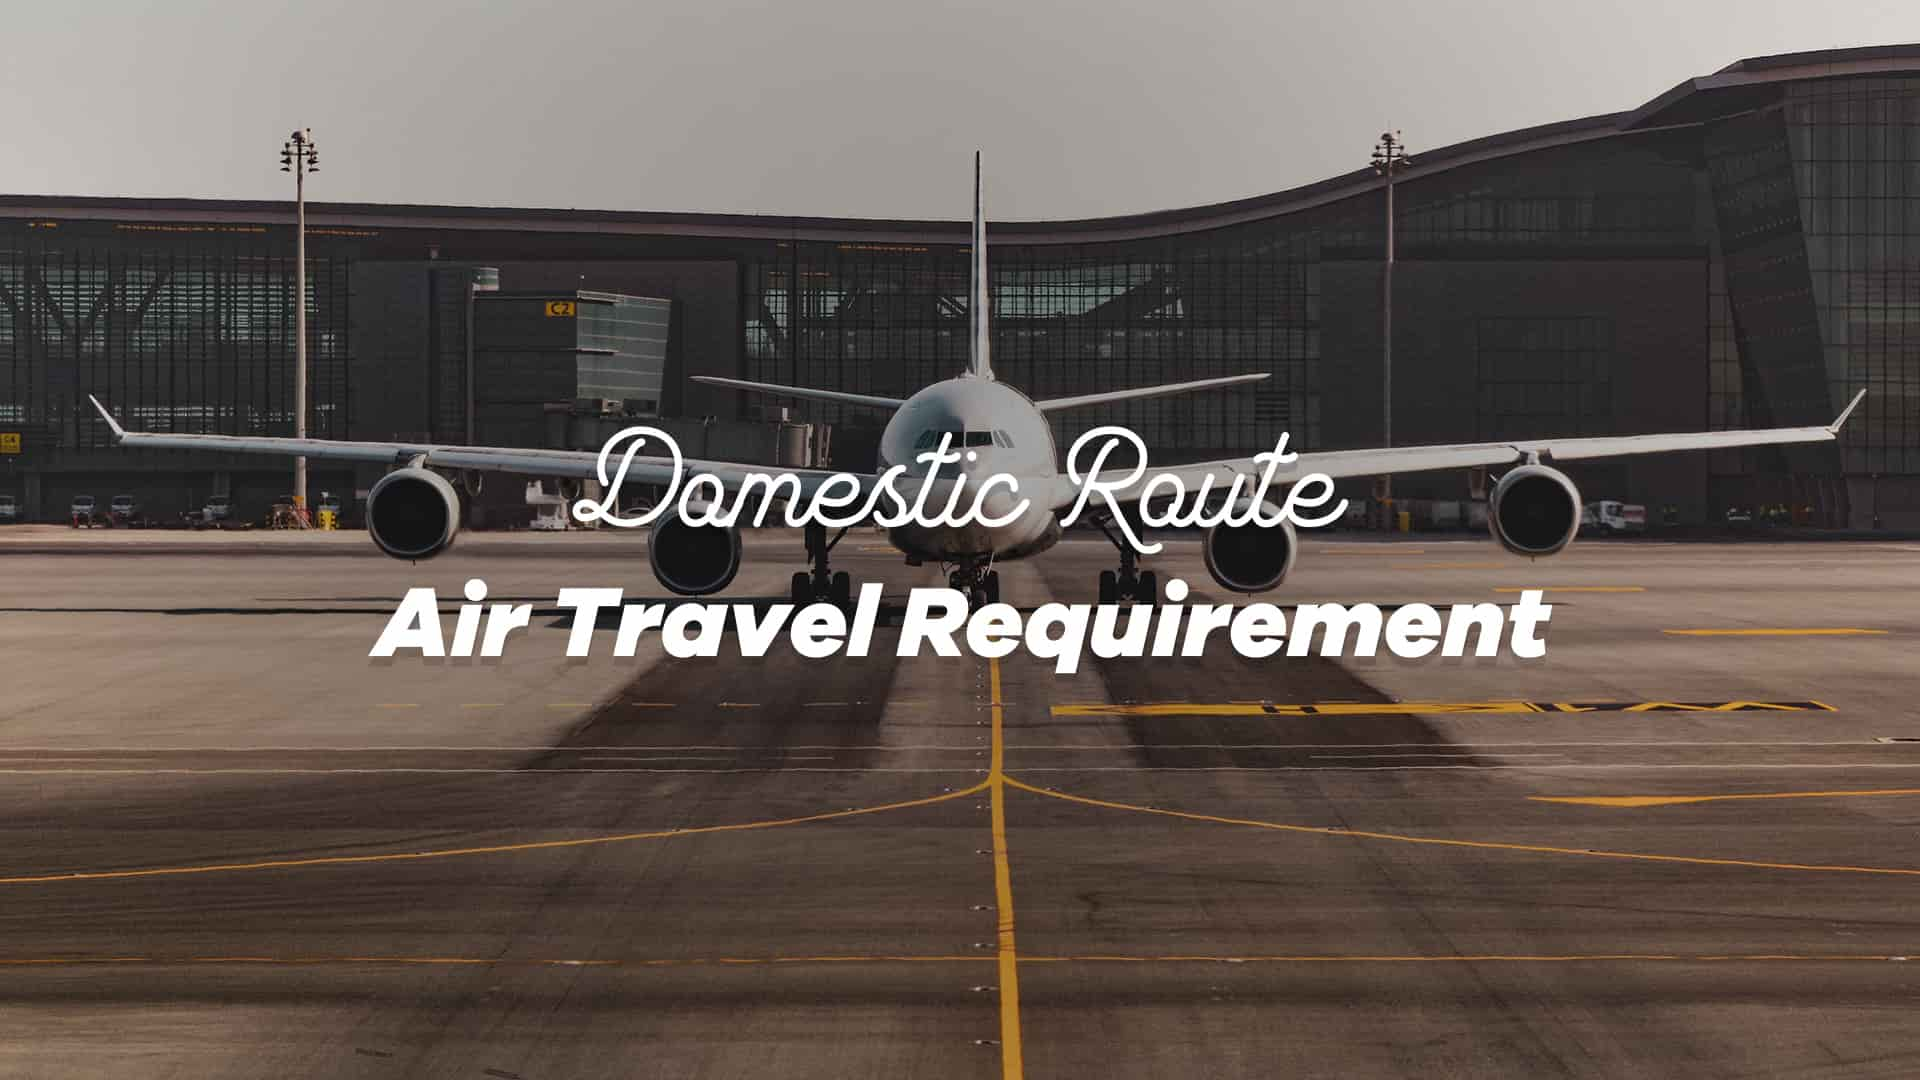 Domestic Air Travel Requirements